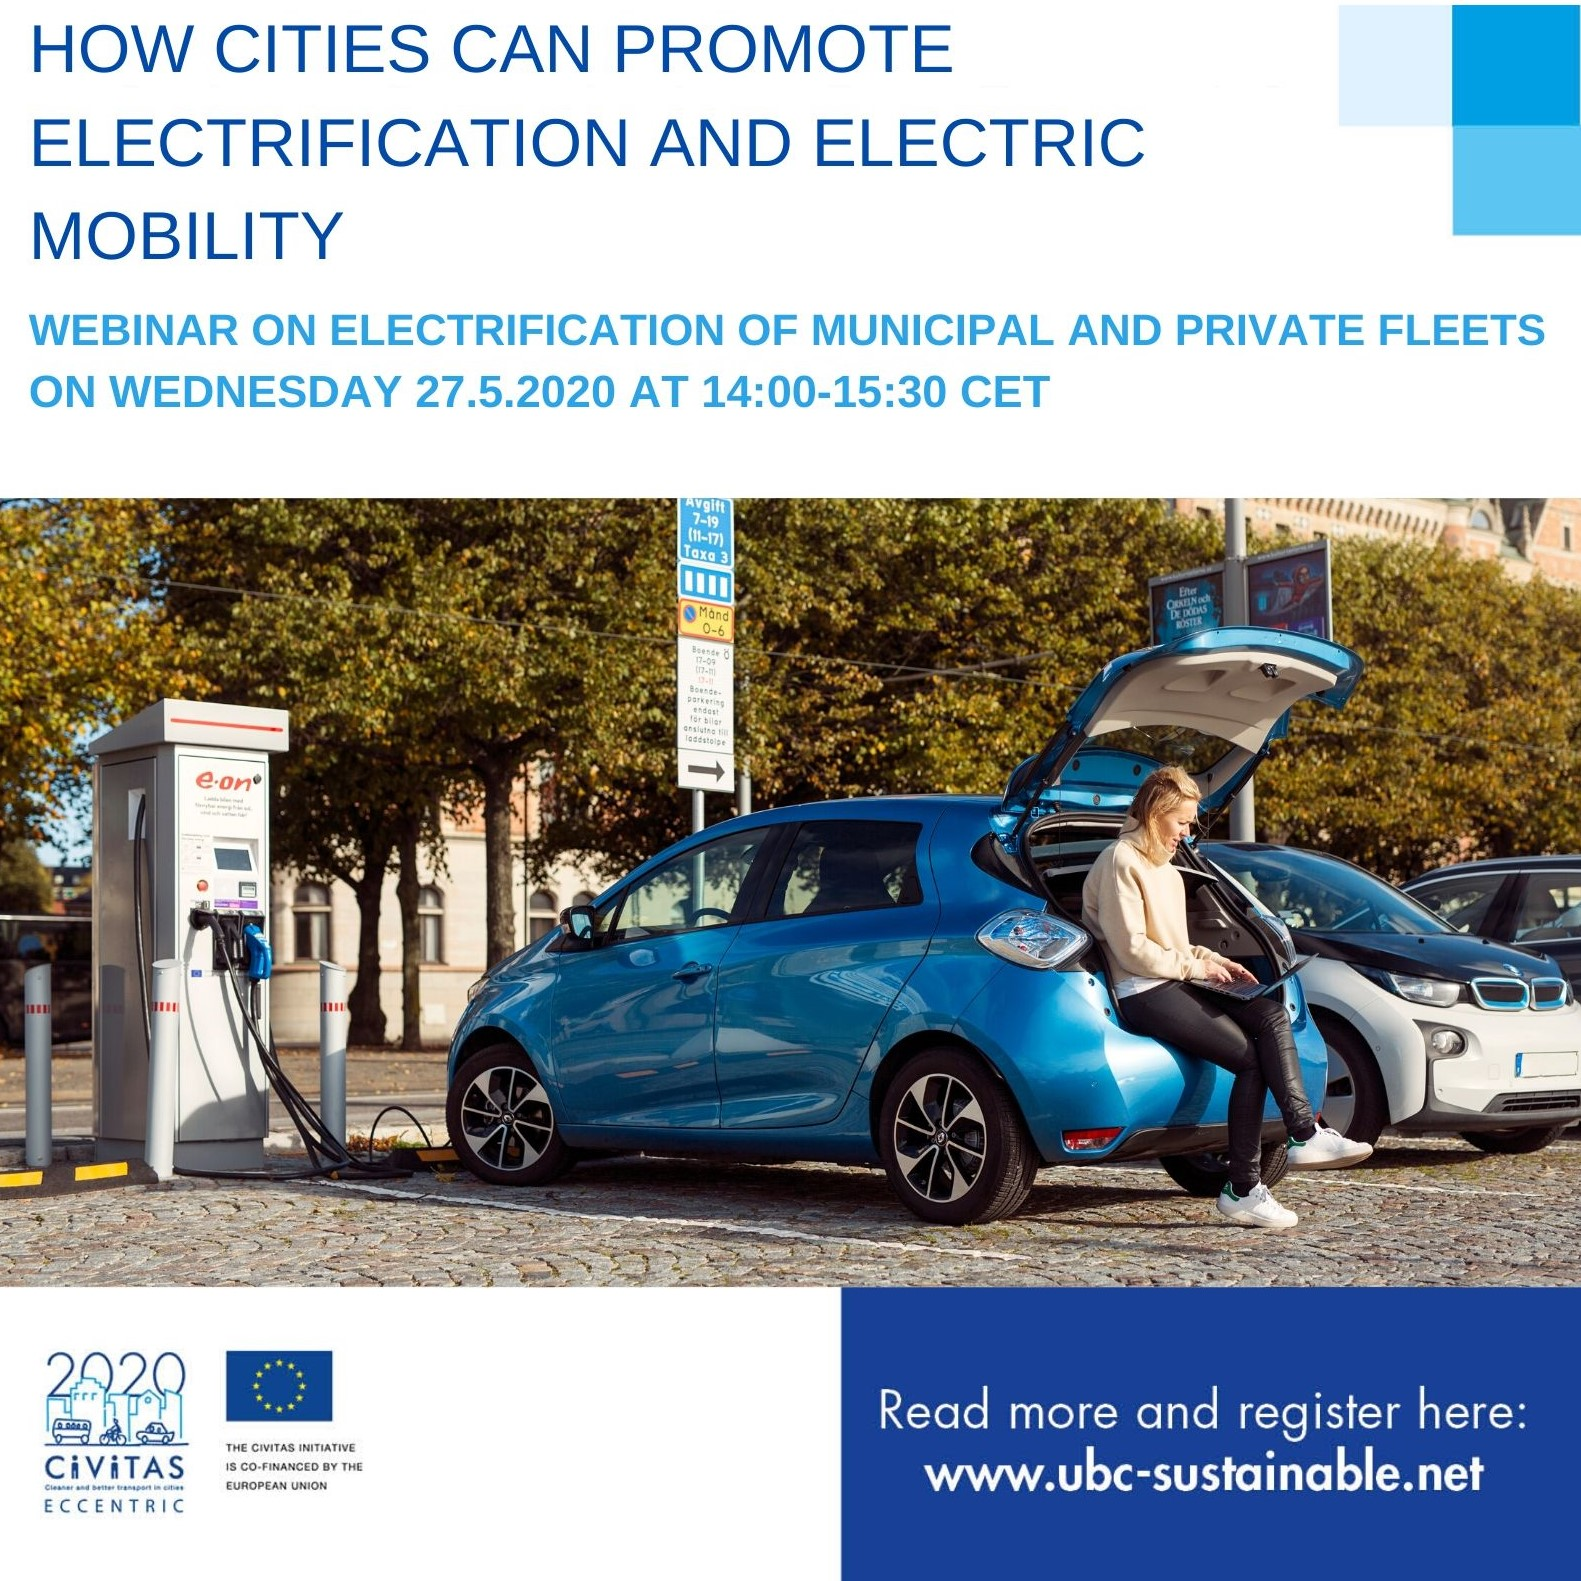 Webinar: How cities can promote electrification and electric mobility